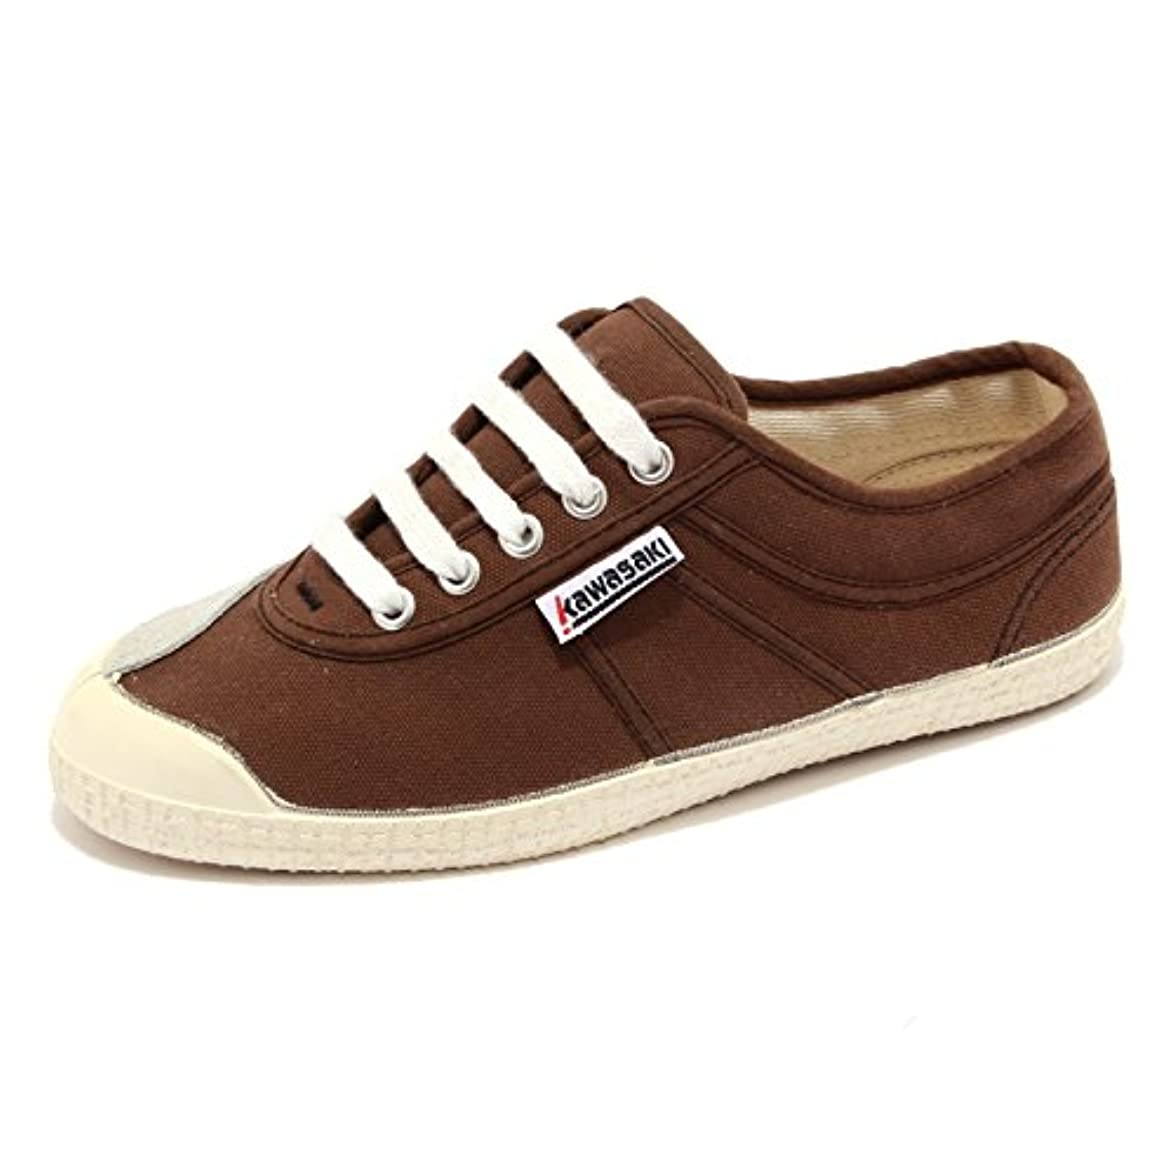 Shoes 383375 Donna Scarpa Whitout Women Box Kawasaki Sneaker